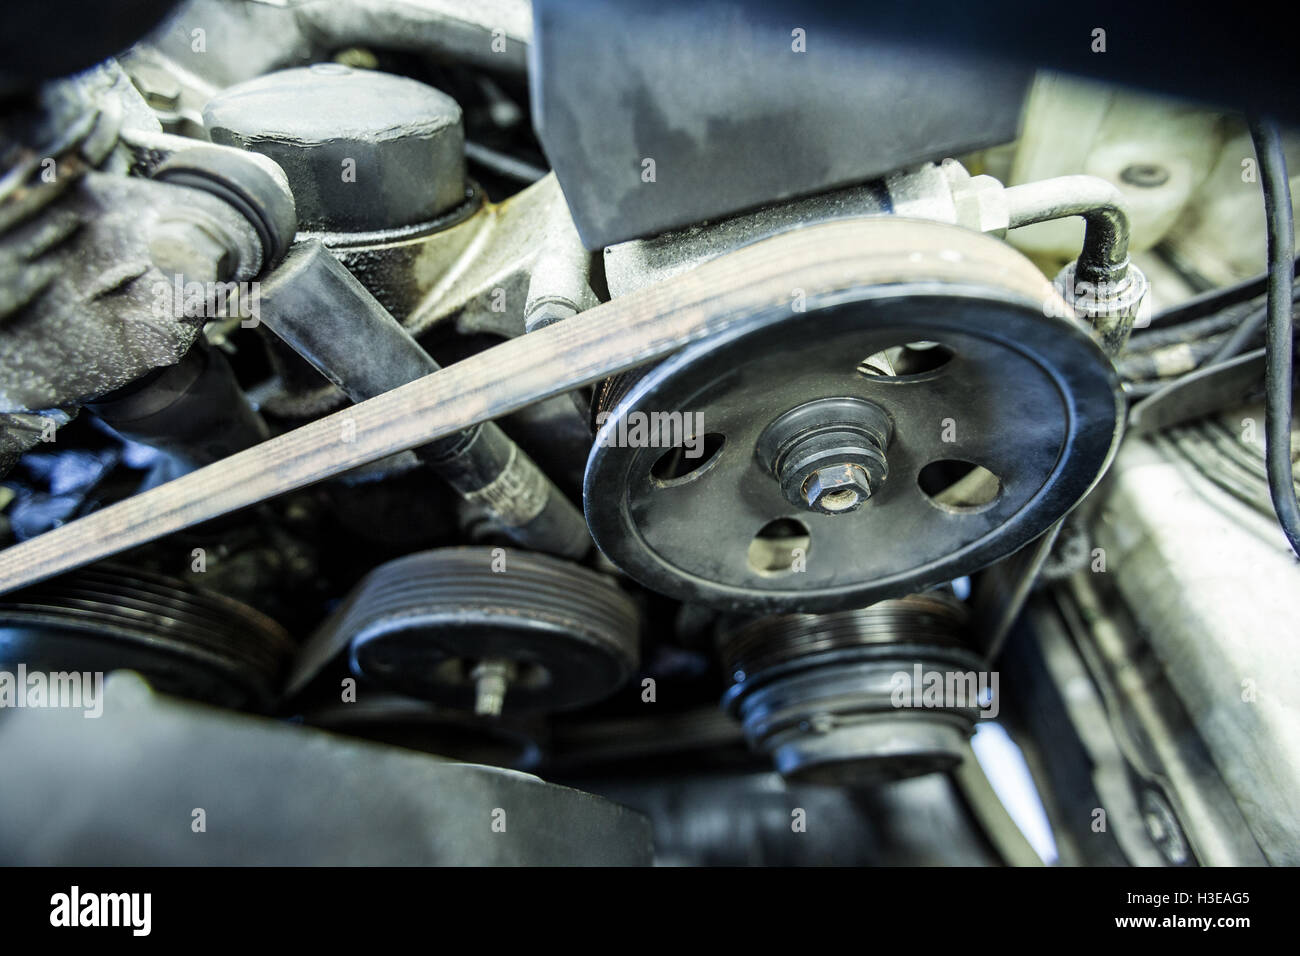 Close-up of car engine and components Stock Photo, Royalty Free ...